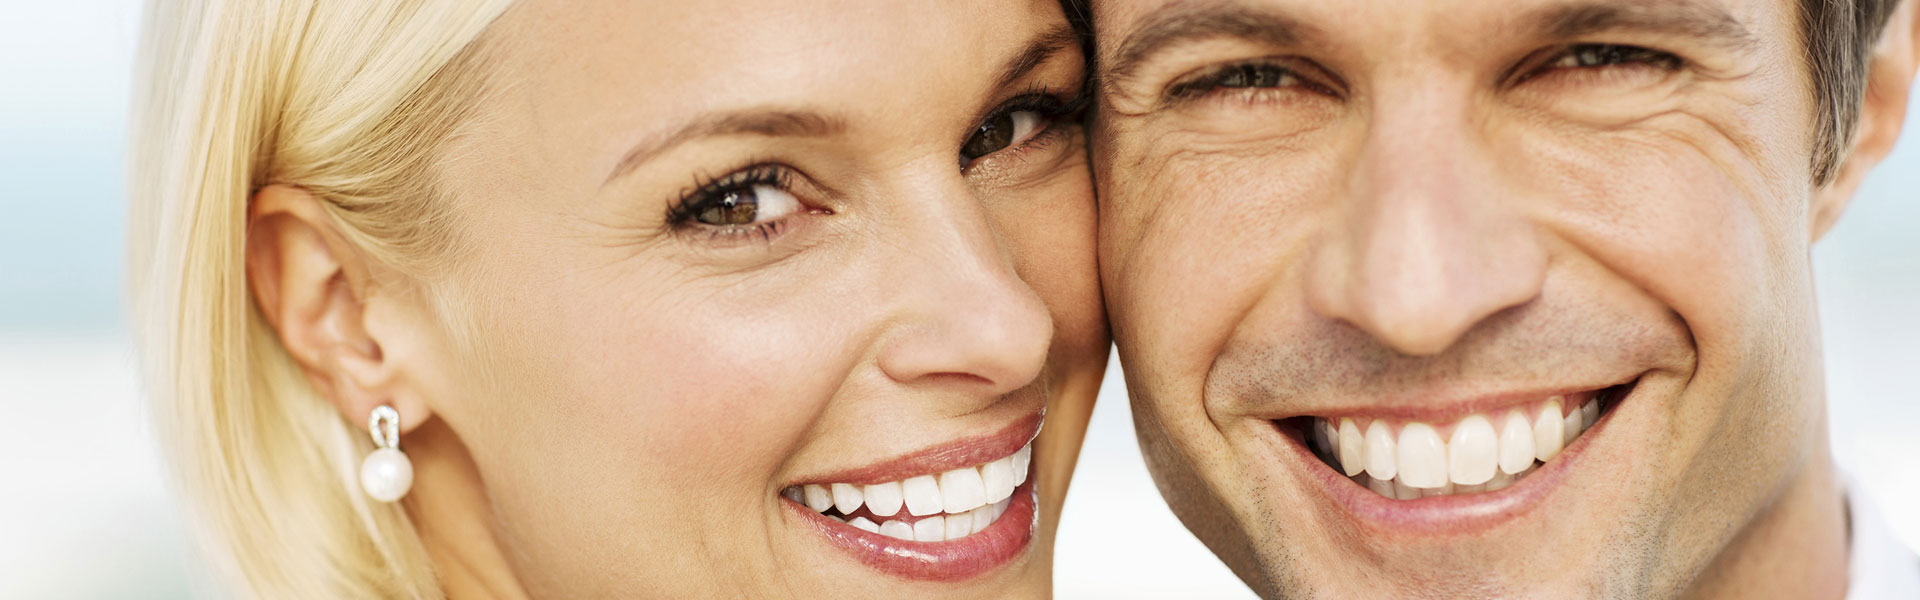 Teeth Whitening Treatment in Sarasota